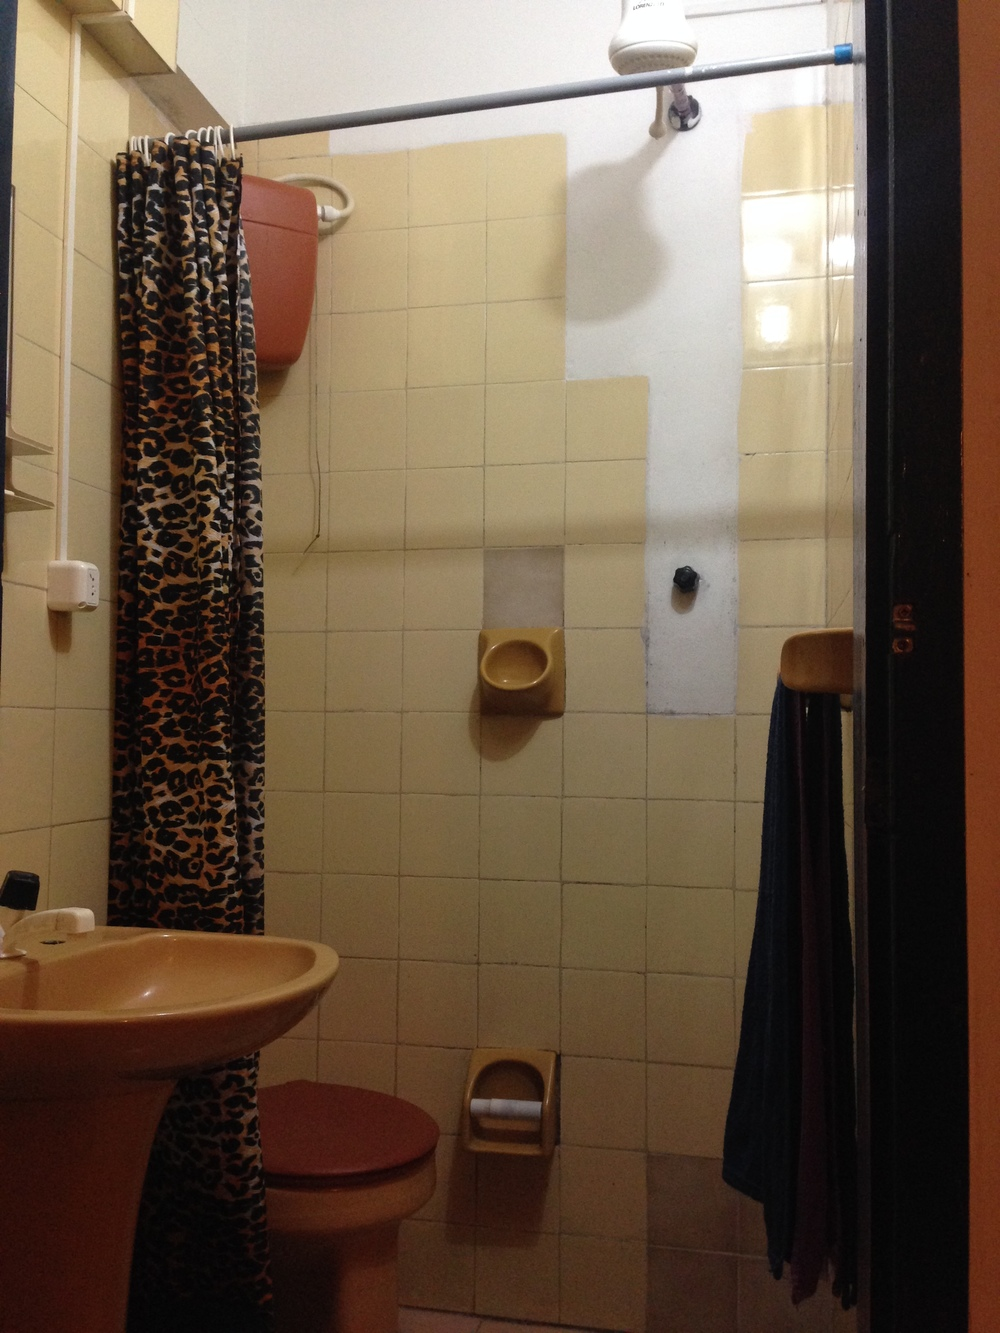 The leopard print shower curtain really set it off!